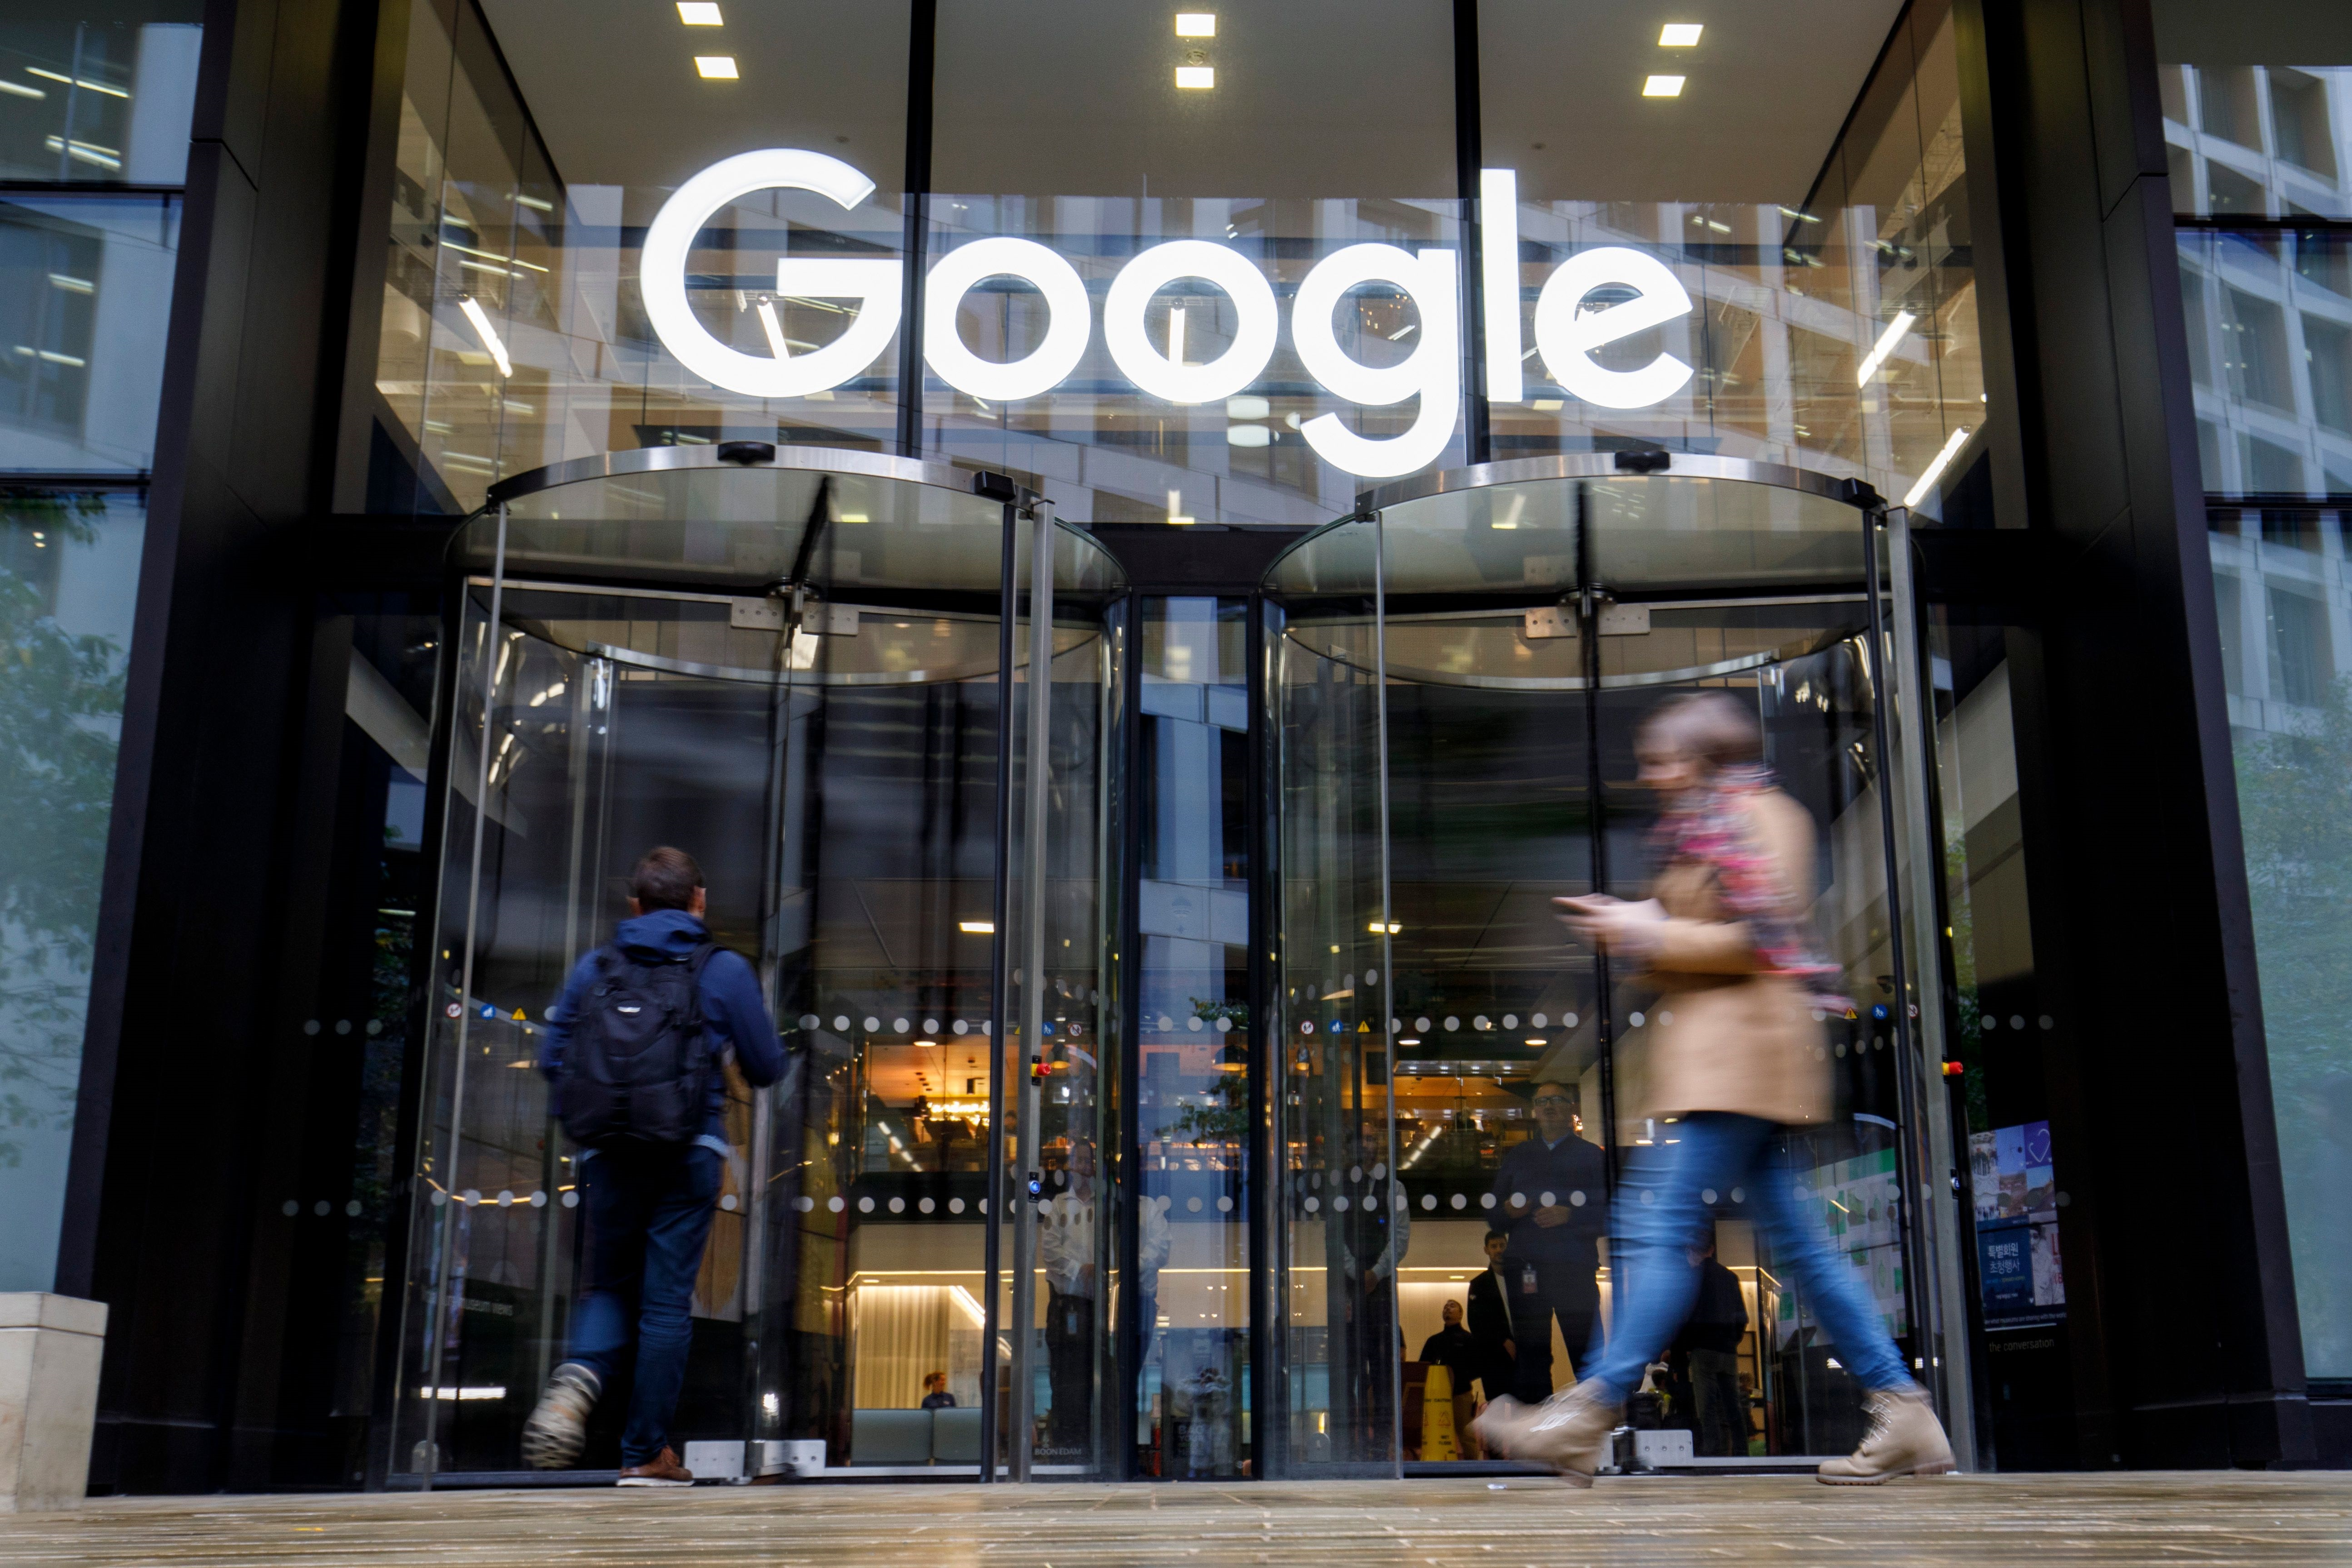 AbbVie hits go on $1B re-upped Calico deal as the Google life science spin-out continues I-O, neuro push